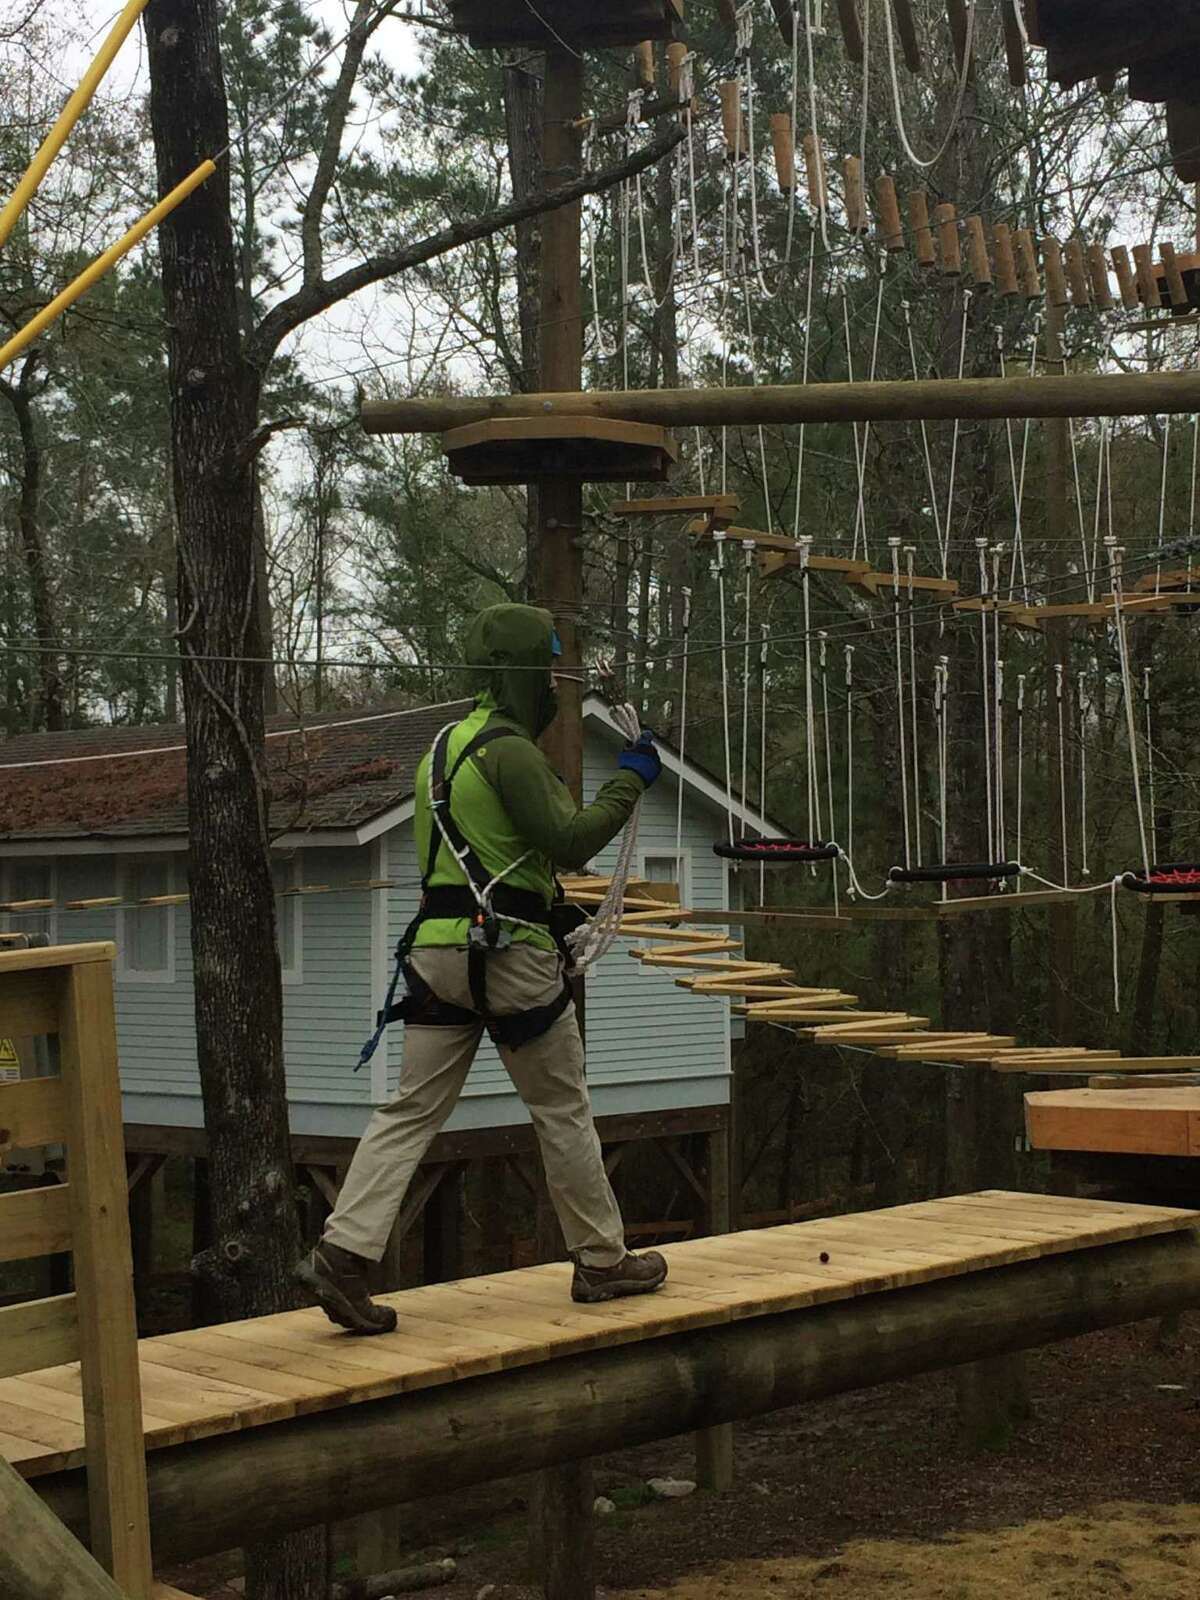 In this April 2019 archive photograph, an employee of Texas TreeVentures practices safety maneuvers prior to the official opening. Six months after opening, nearly 5,500 paid customers have gone through the complex, challenging course located in the scene tree-lined landscape of Rob Fleming Park in the south area of The Woodlands.